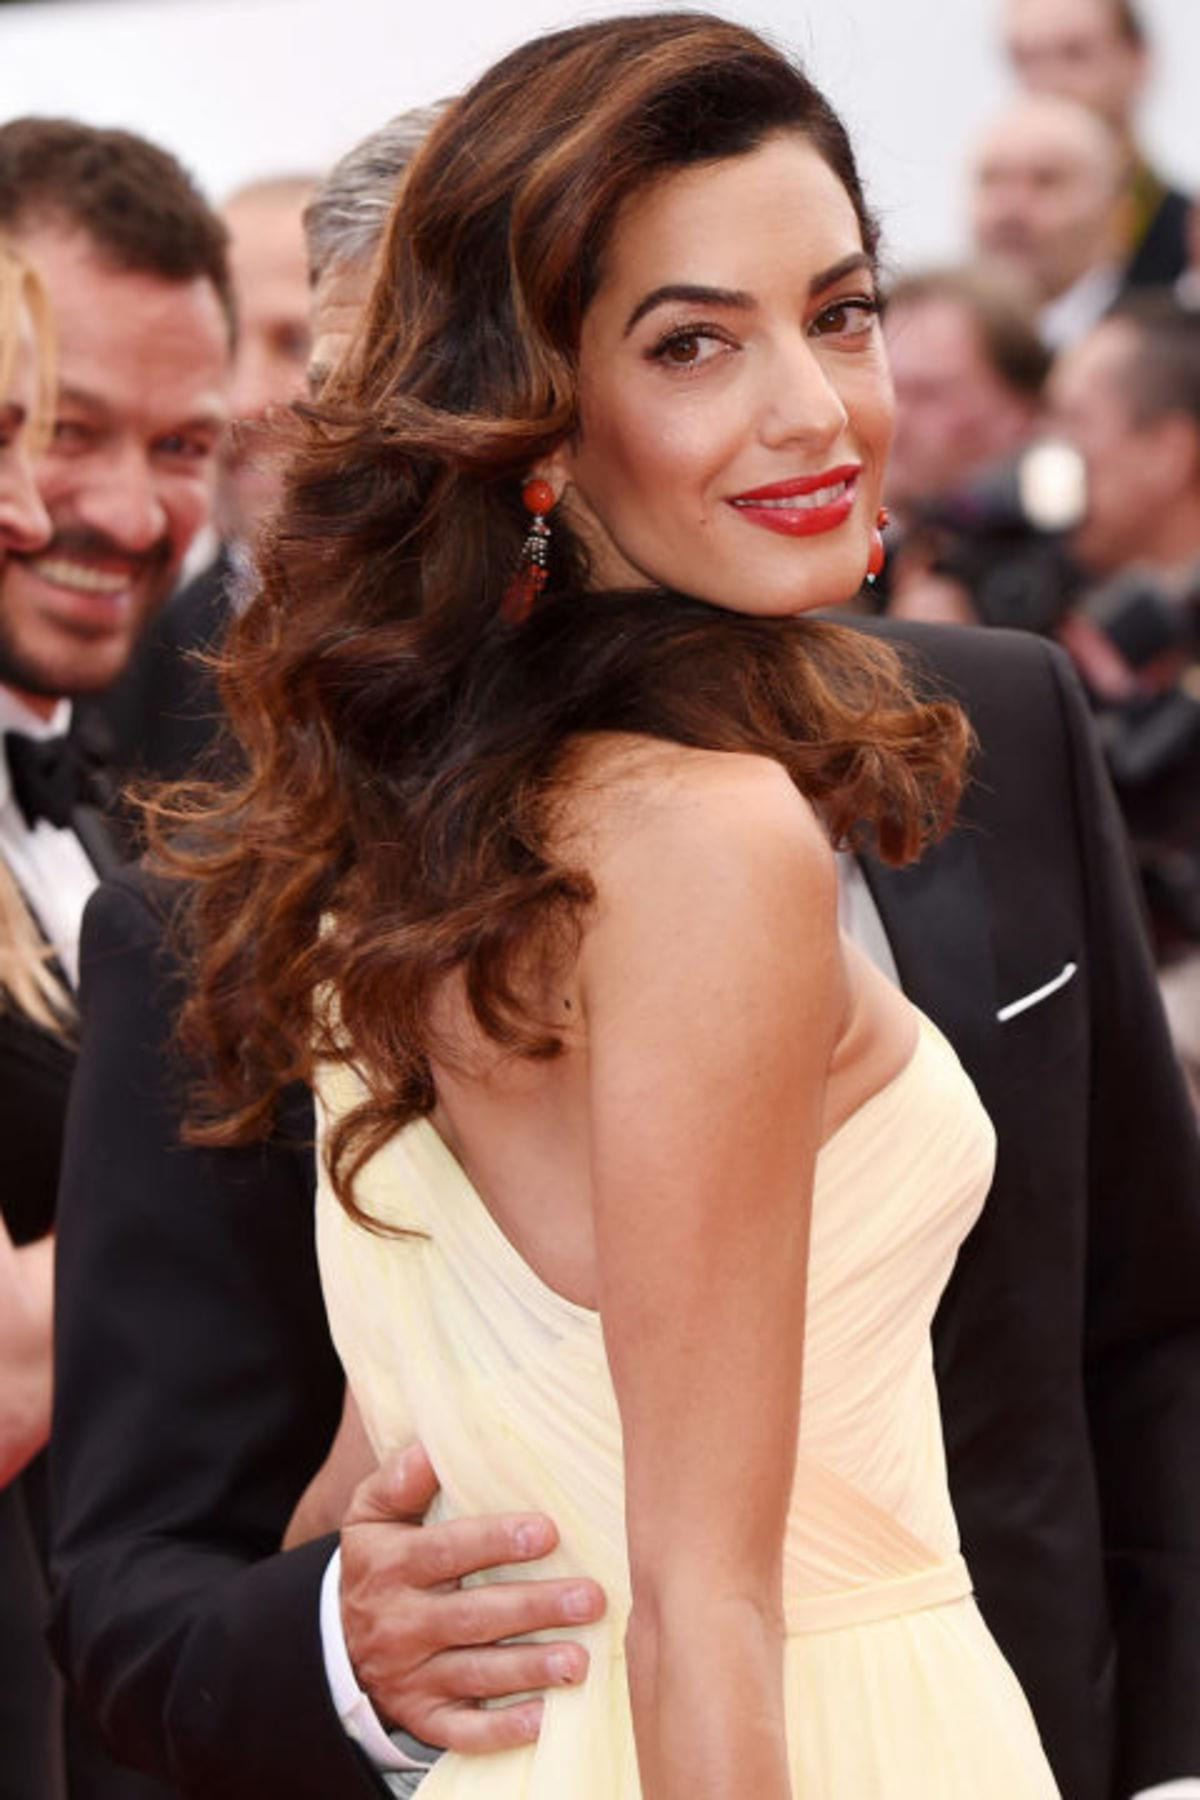 gallery-1469548487-hbz-amal-cannes-shutterstock